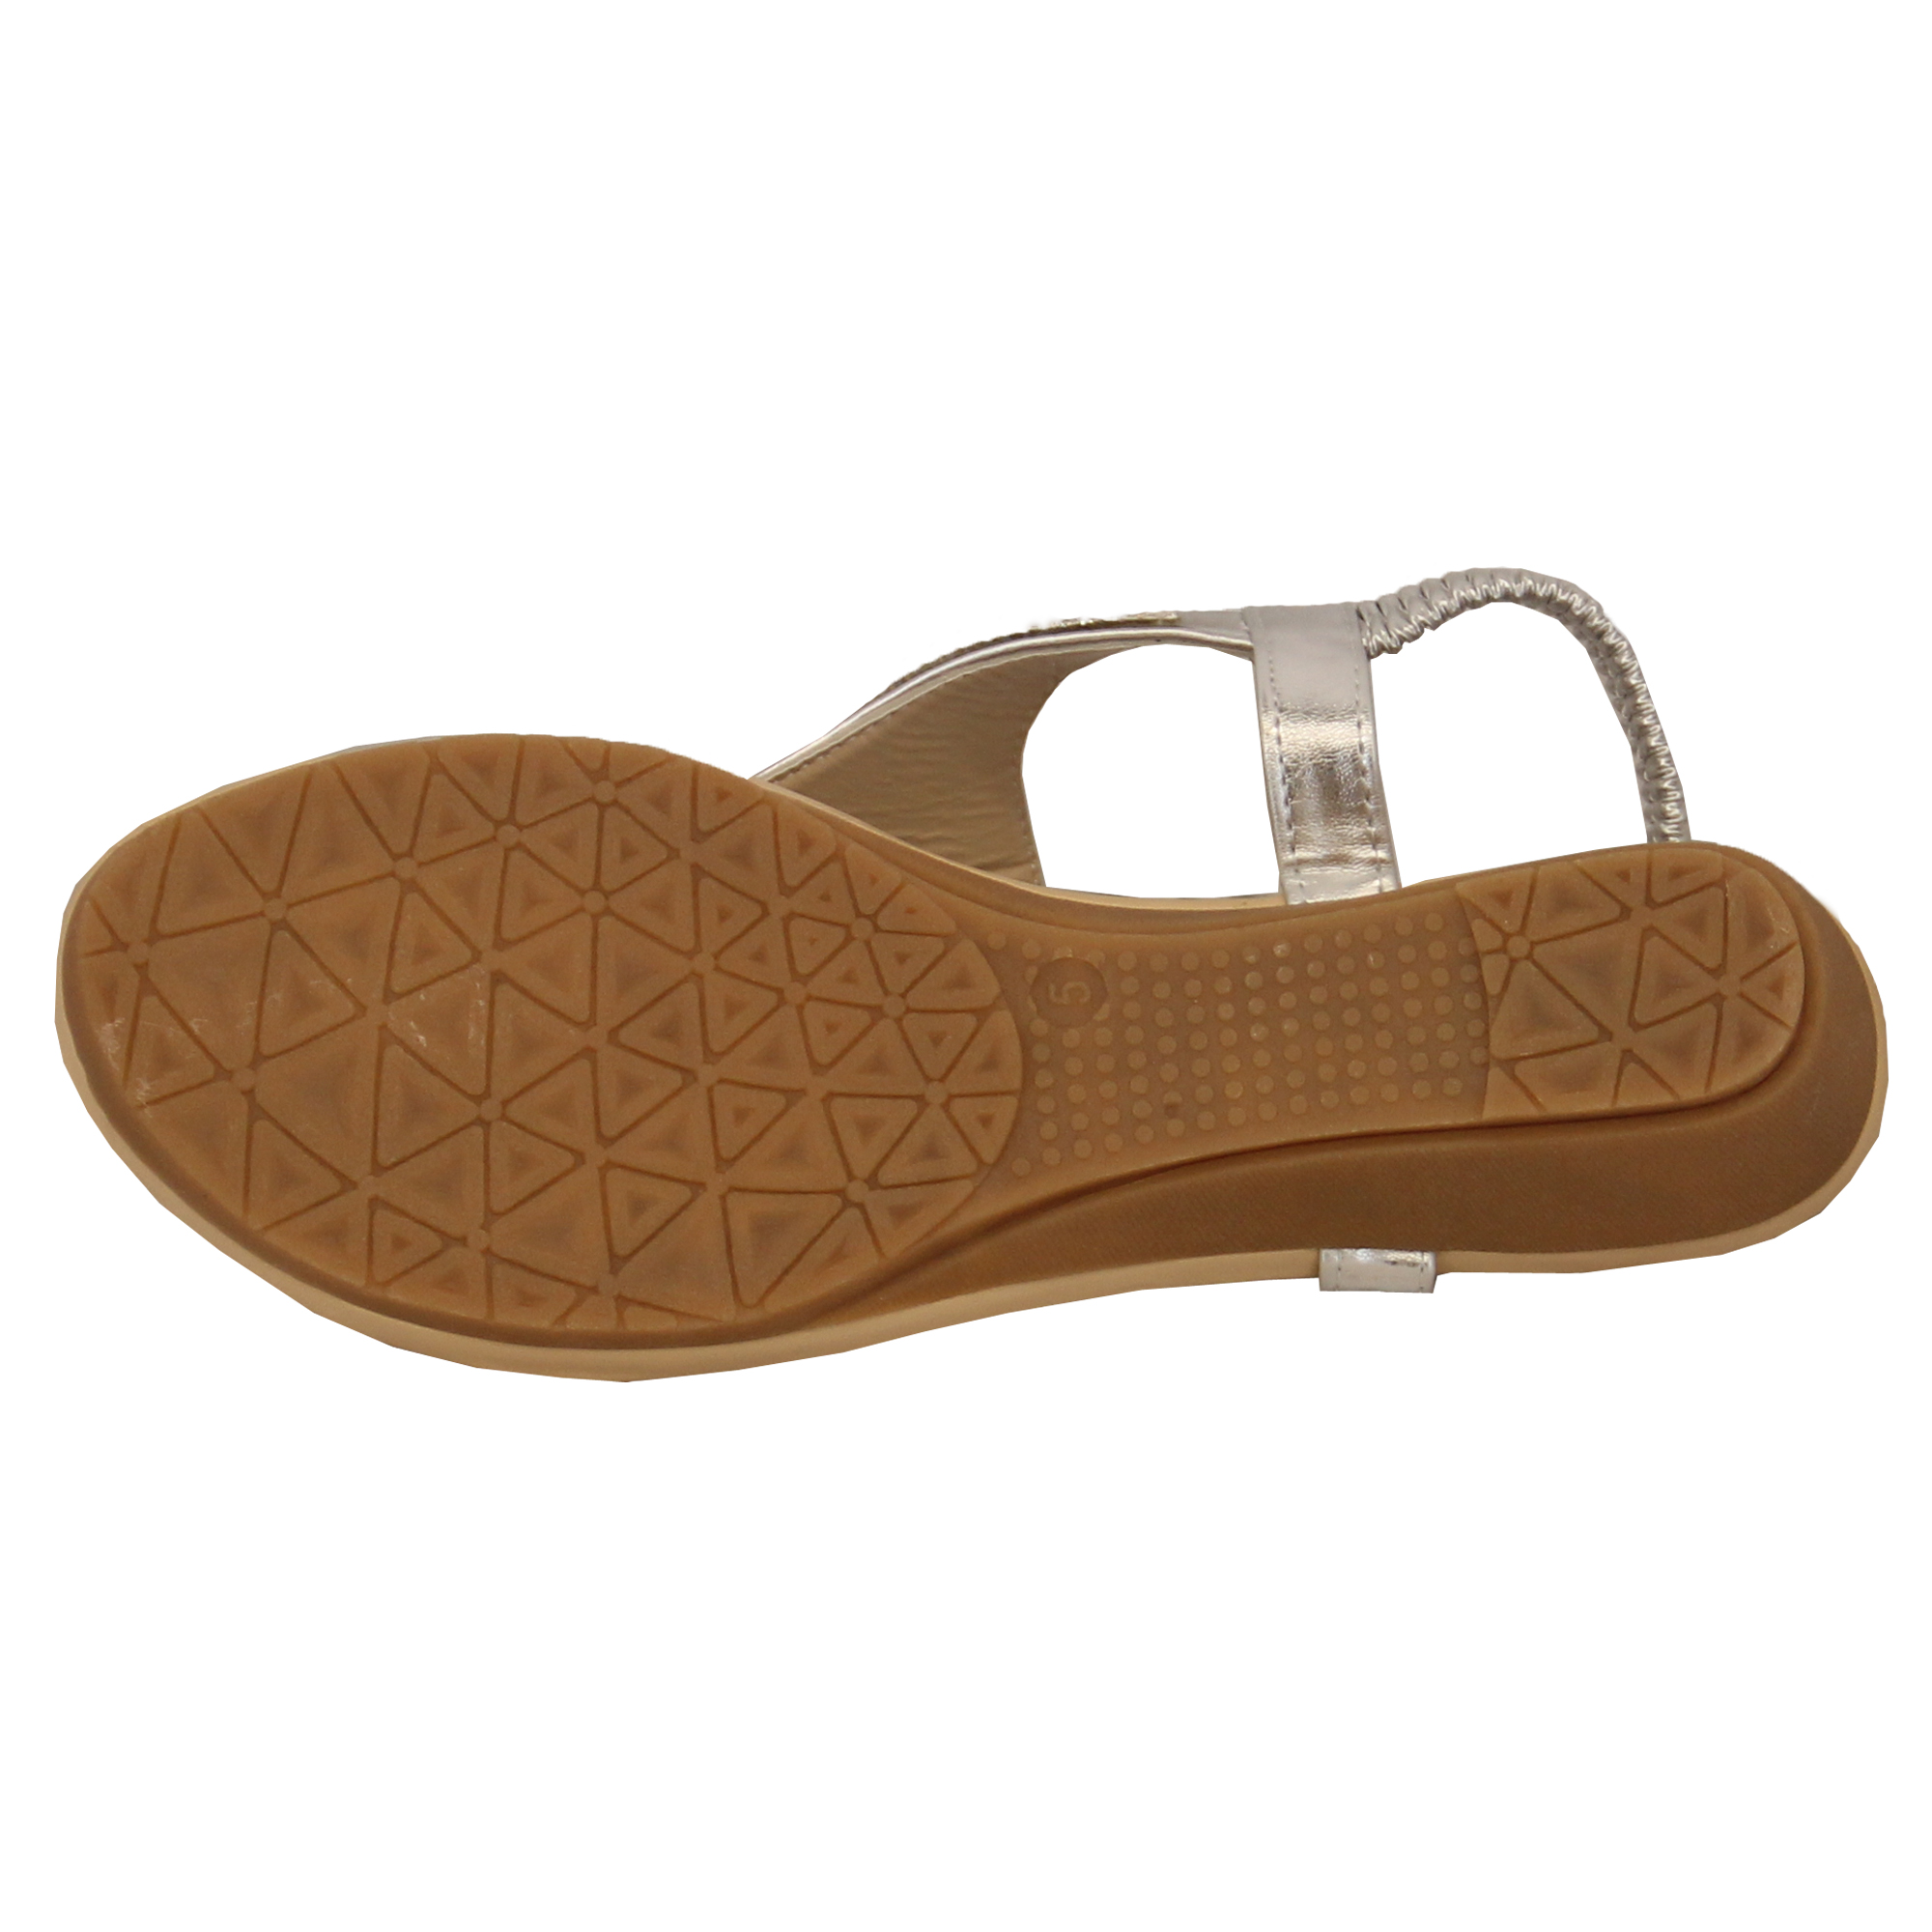 Ladies-Sandals-Kelsi-Womens-Diamante-Slip-On-Toe-Post-Shoes-Casual-Fashion-New thumbnail 26